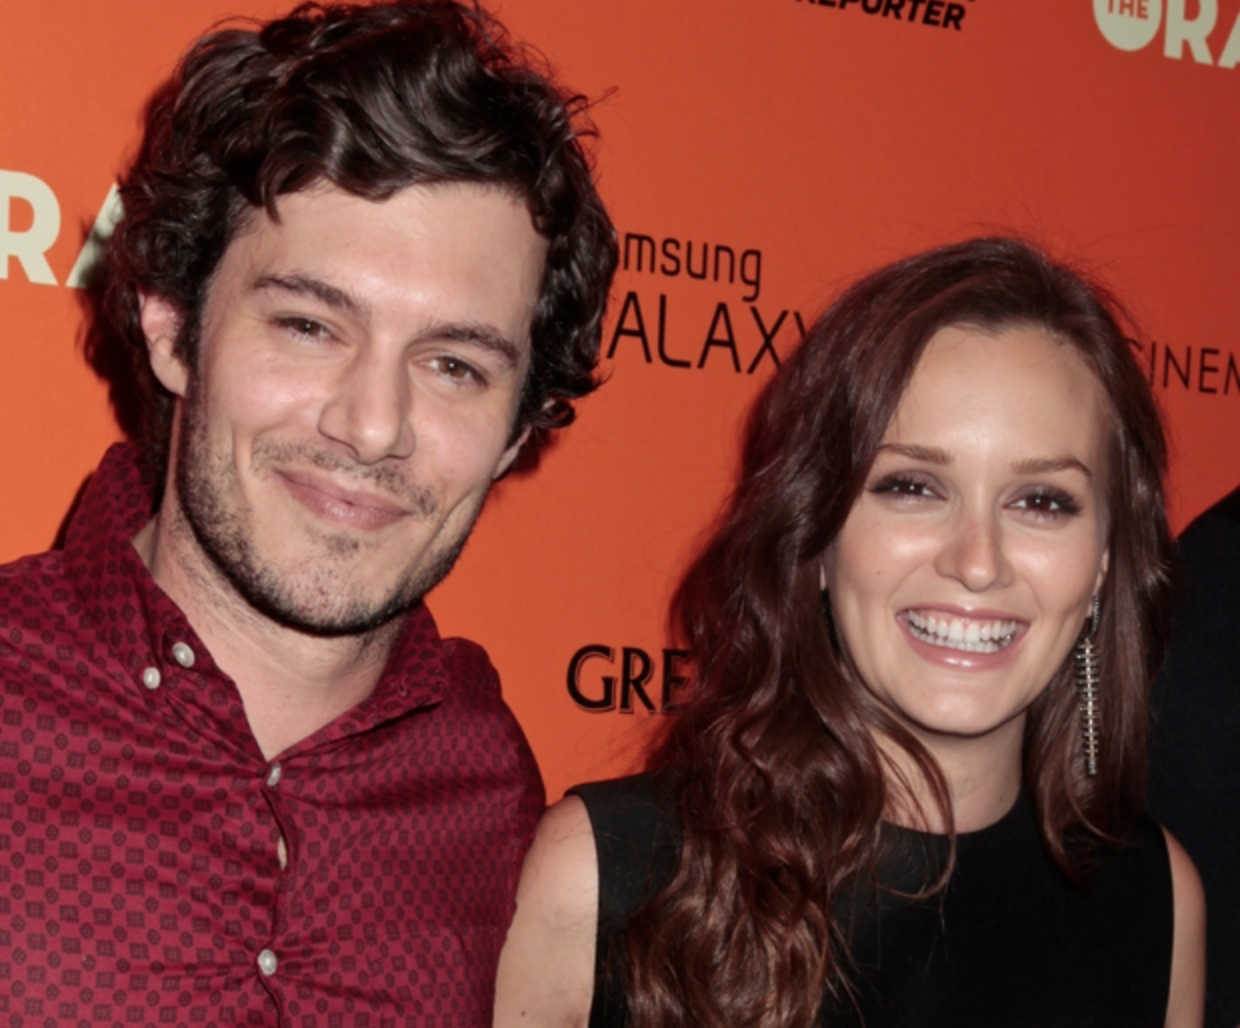 Newlyweds Adam Brody and Leighton Meester